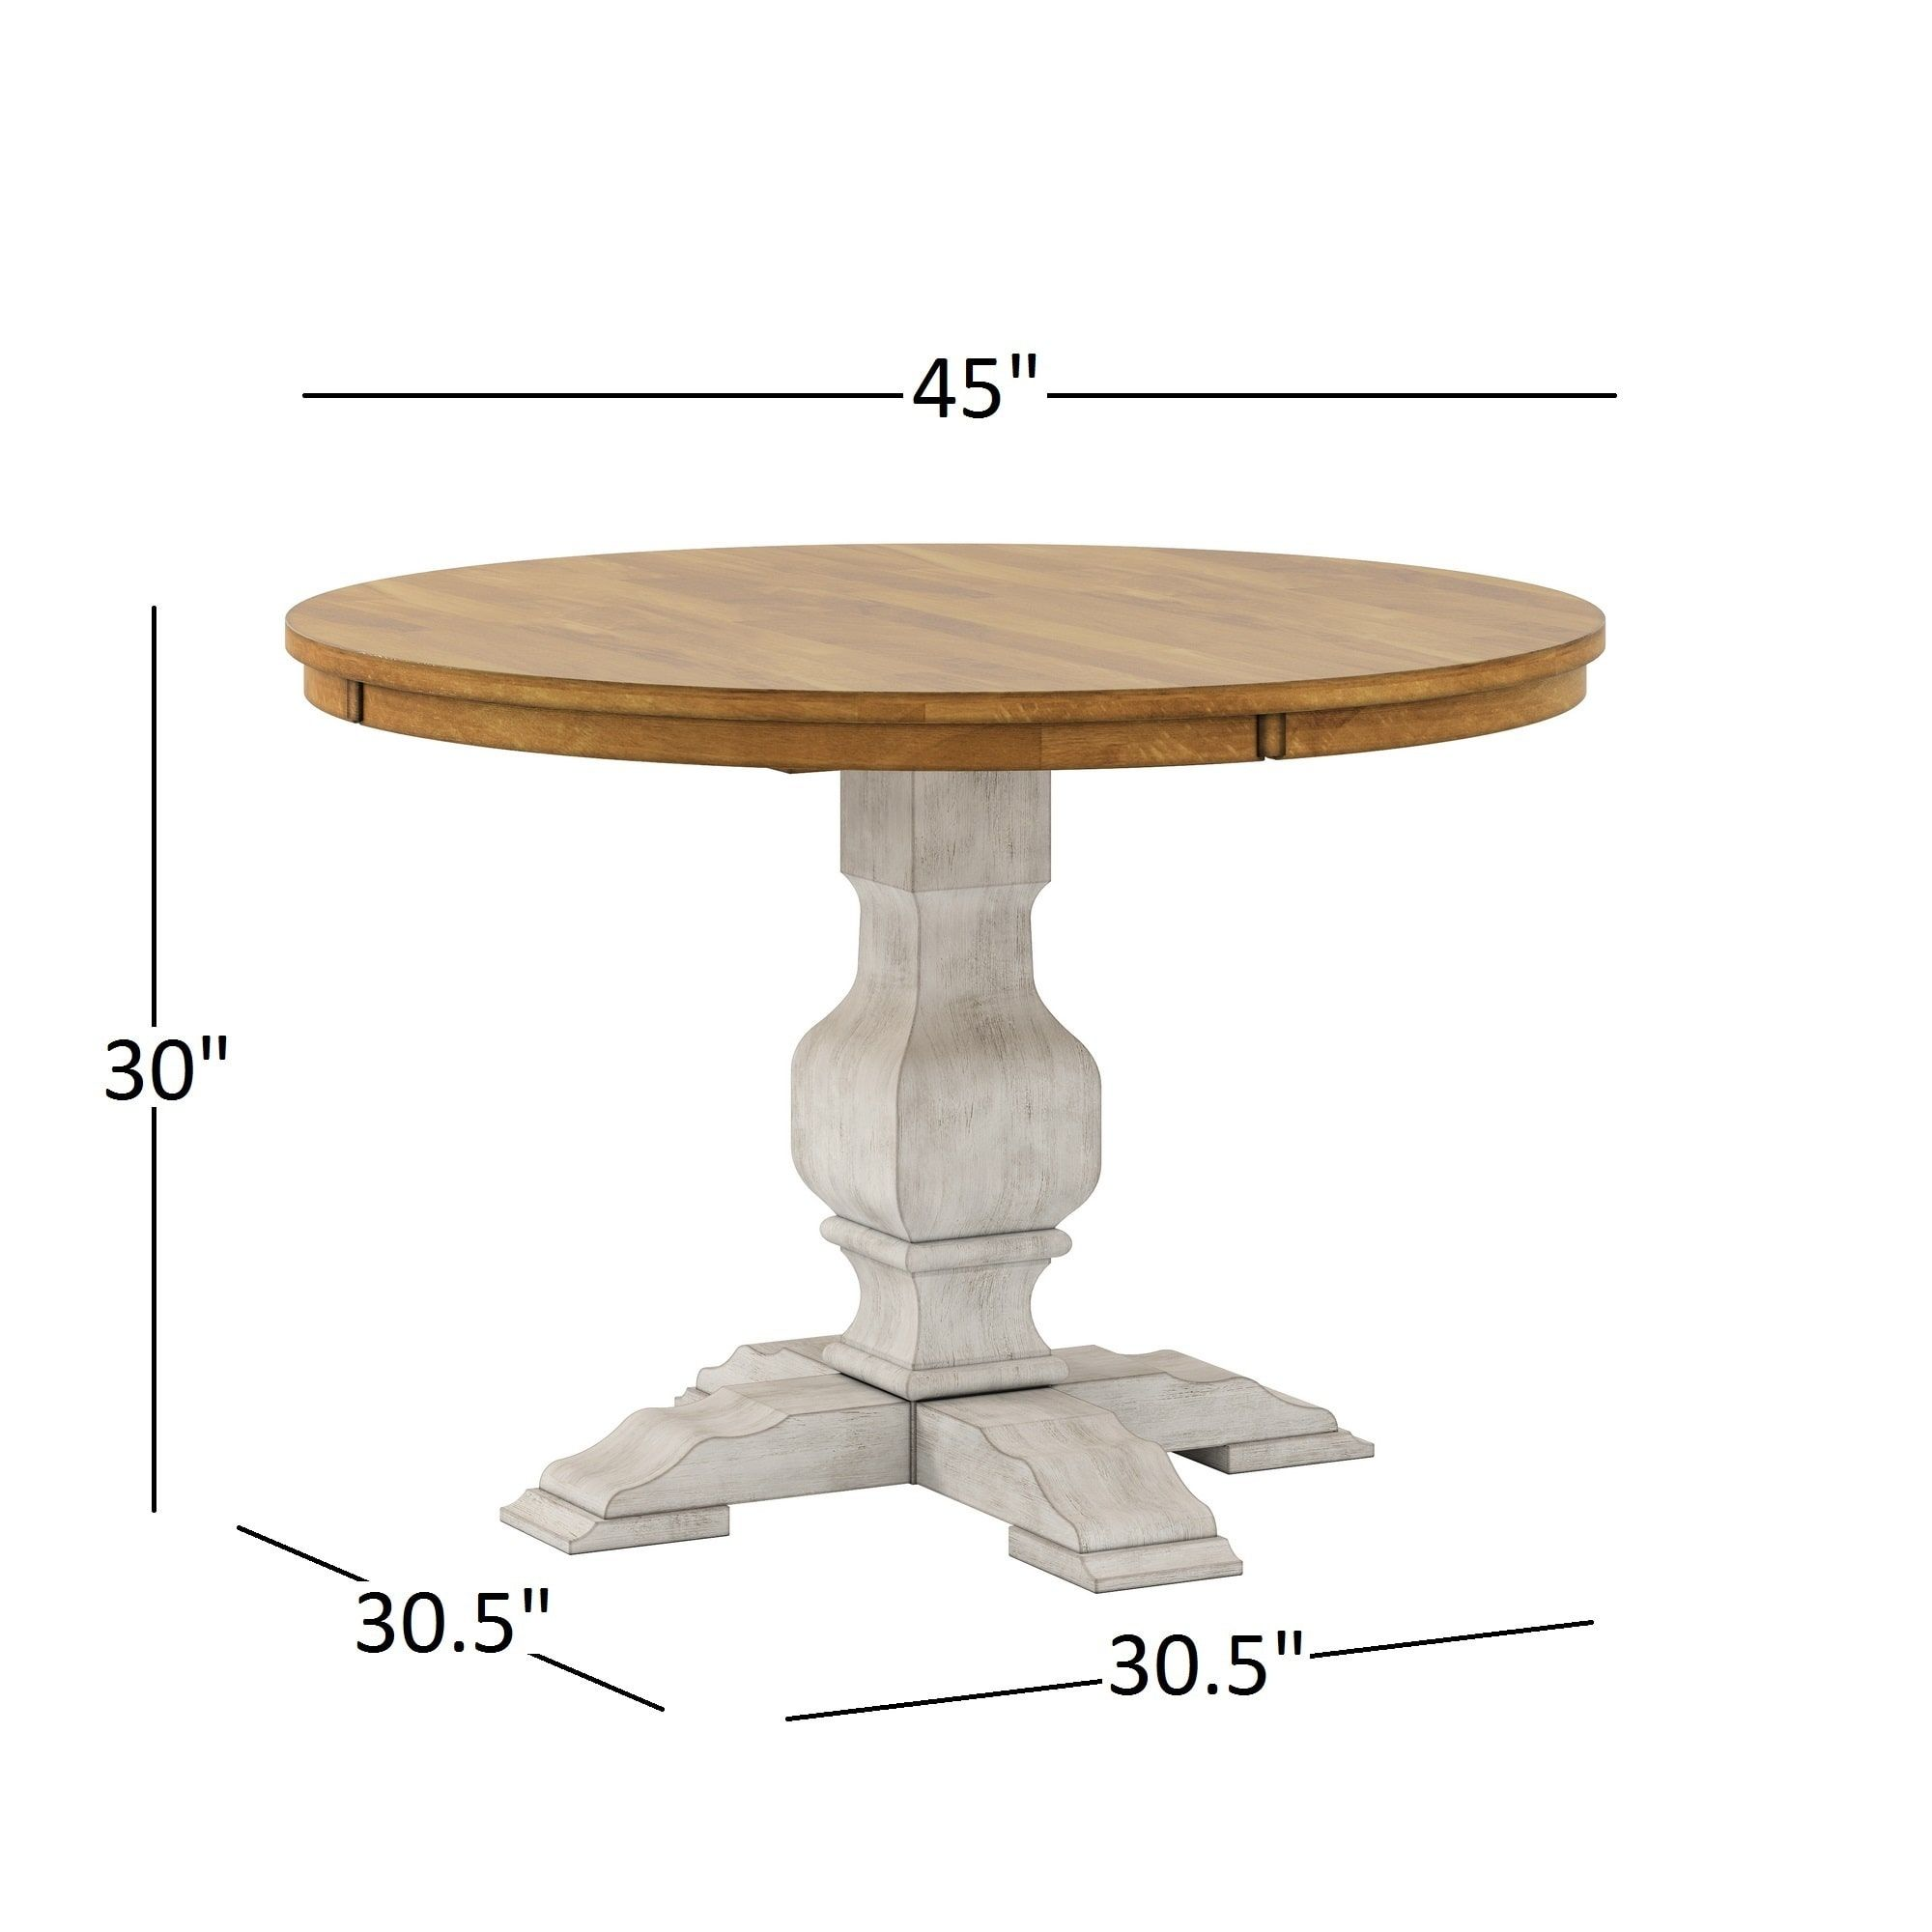 Eleanor Two-tone Round Solid Wood Top Dining Table by iNSPIRE Q Classic |  Overstock